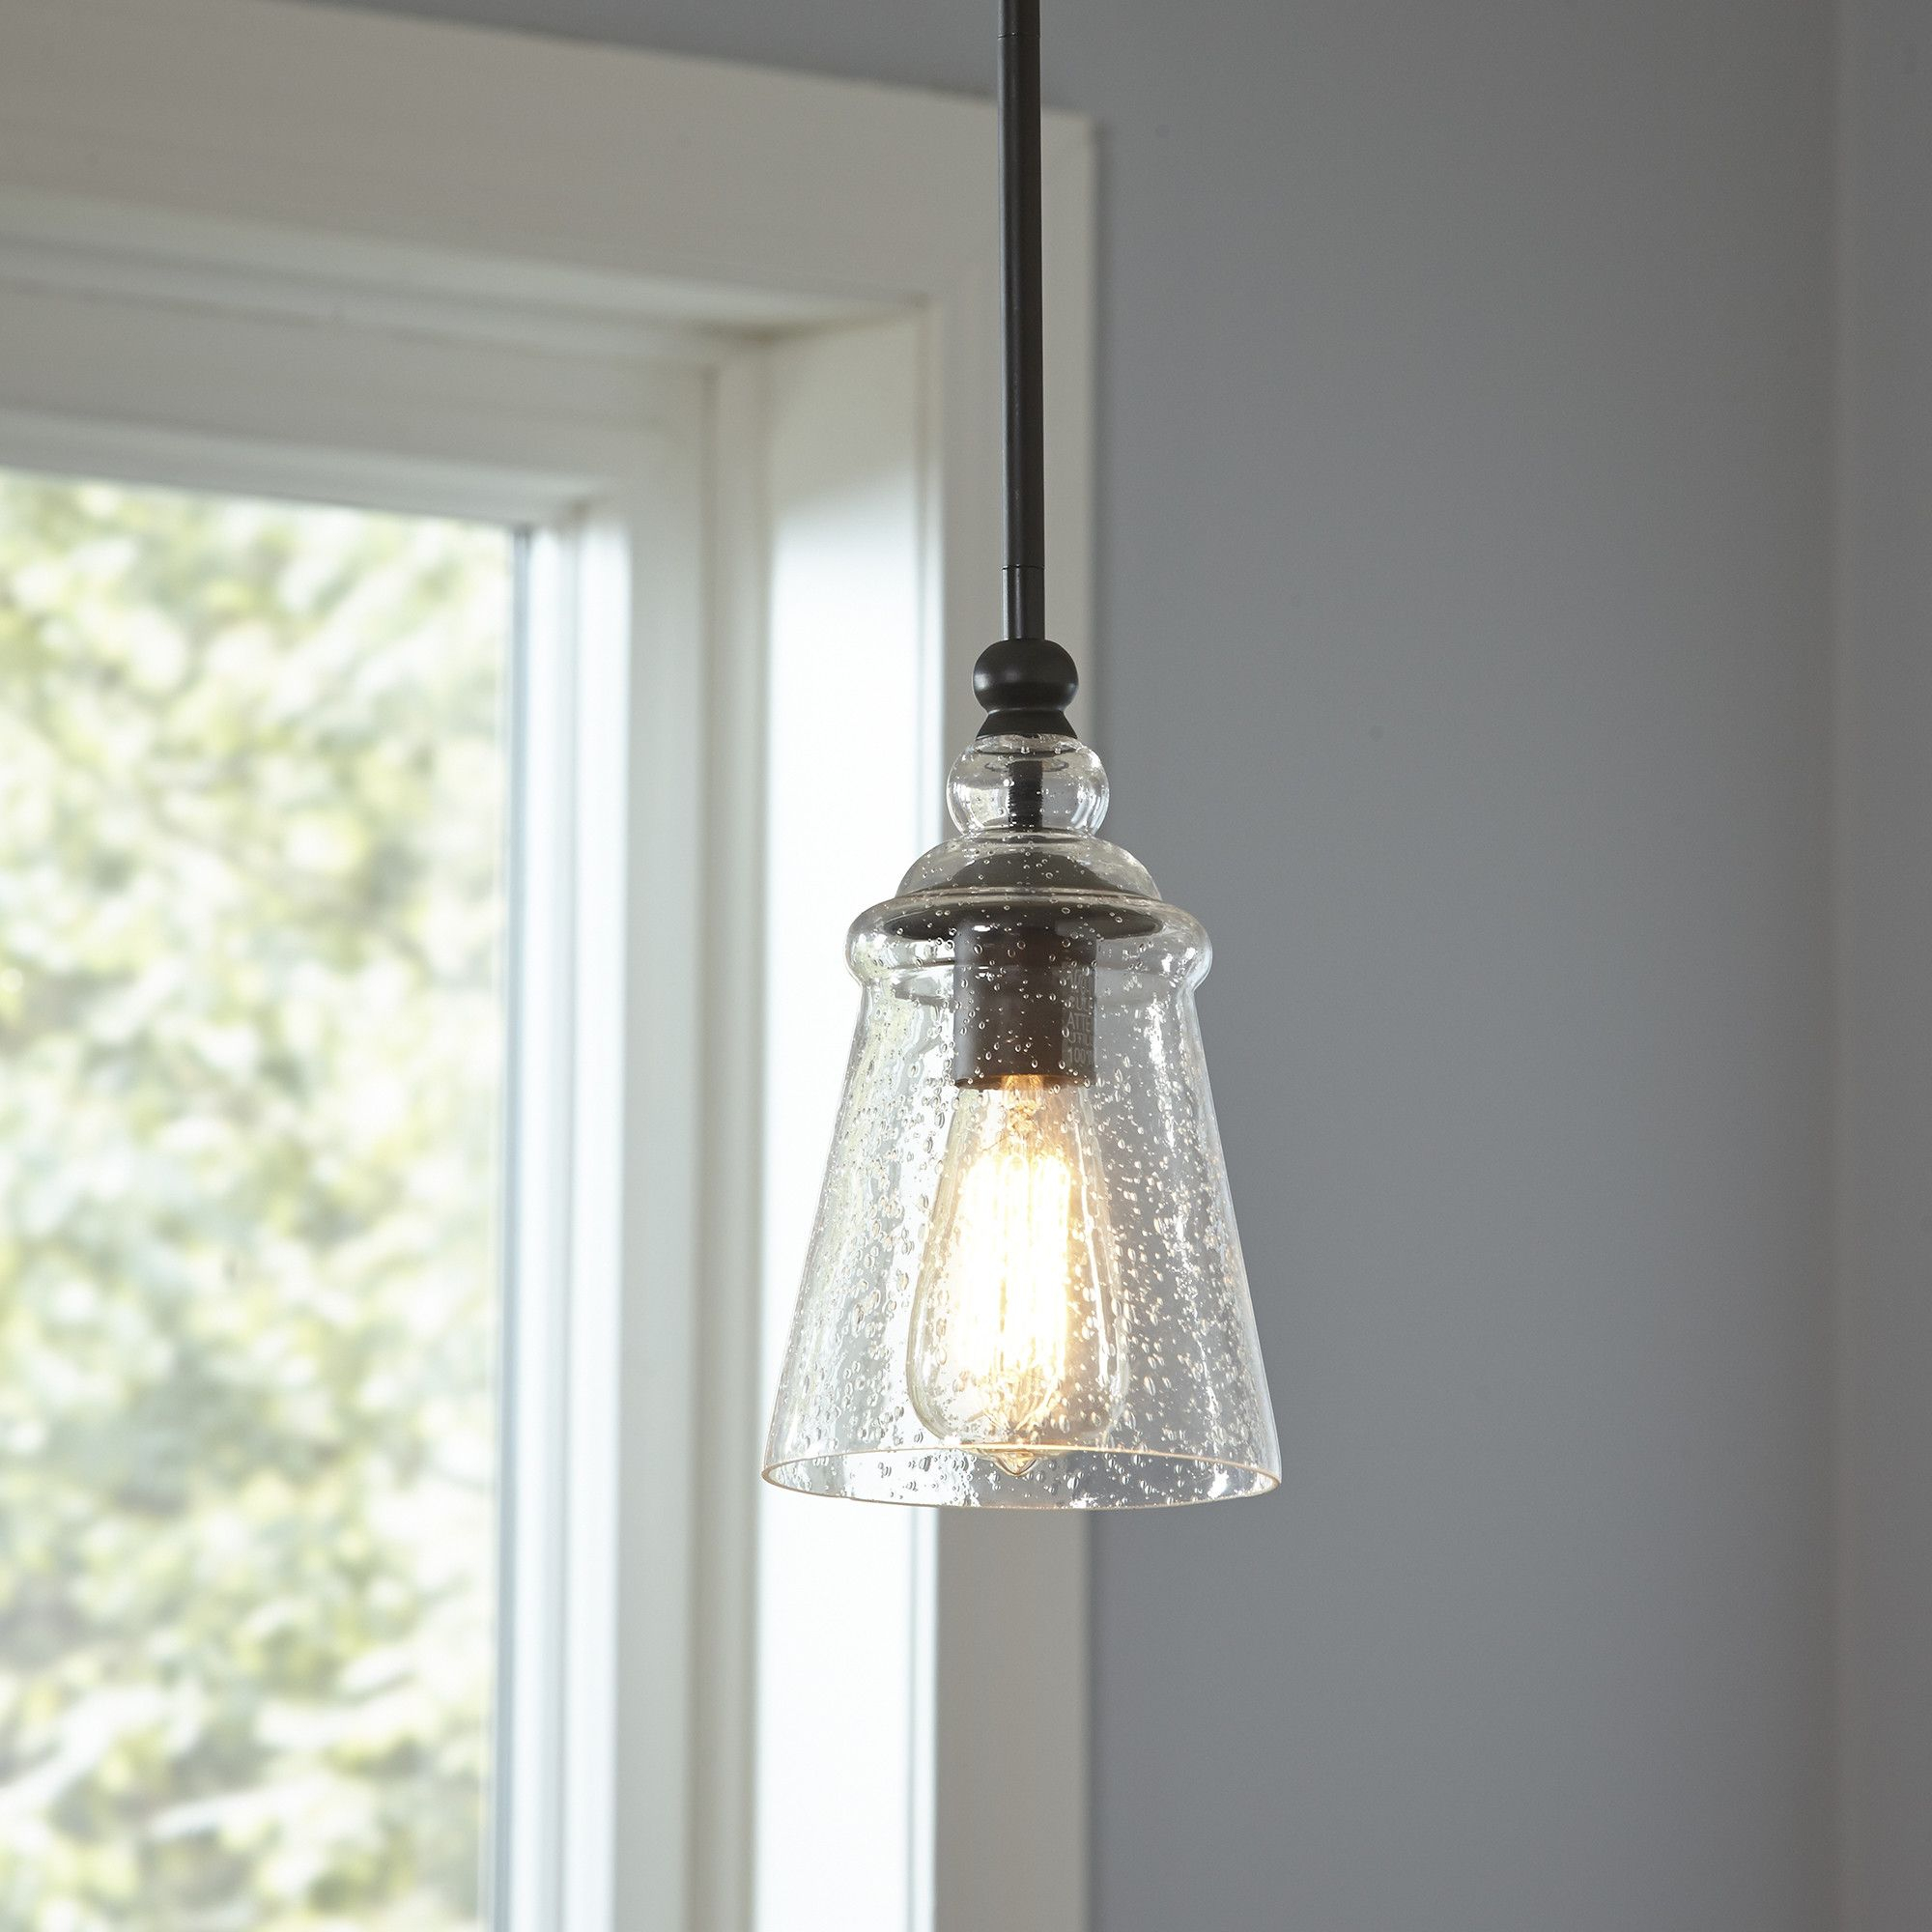 Sargent 1 Light Bell Pendant In 2018 | Lighting | Pinterest Inside Sargent 1 Light Single Bell Pendants (View 22 of 30)